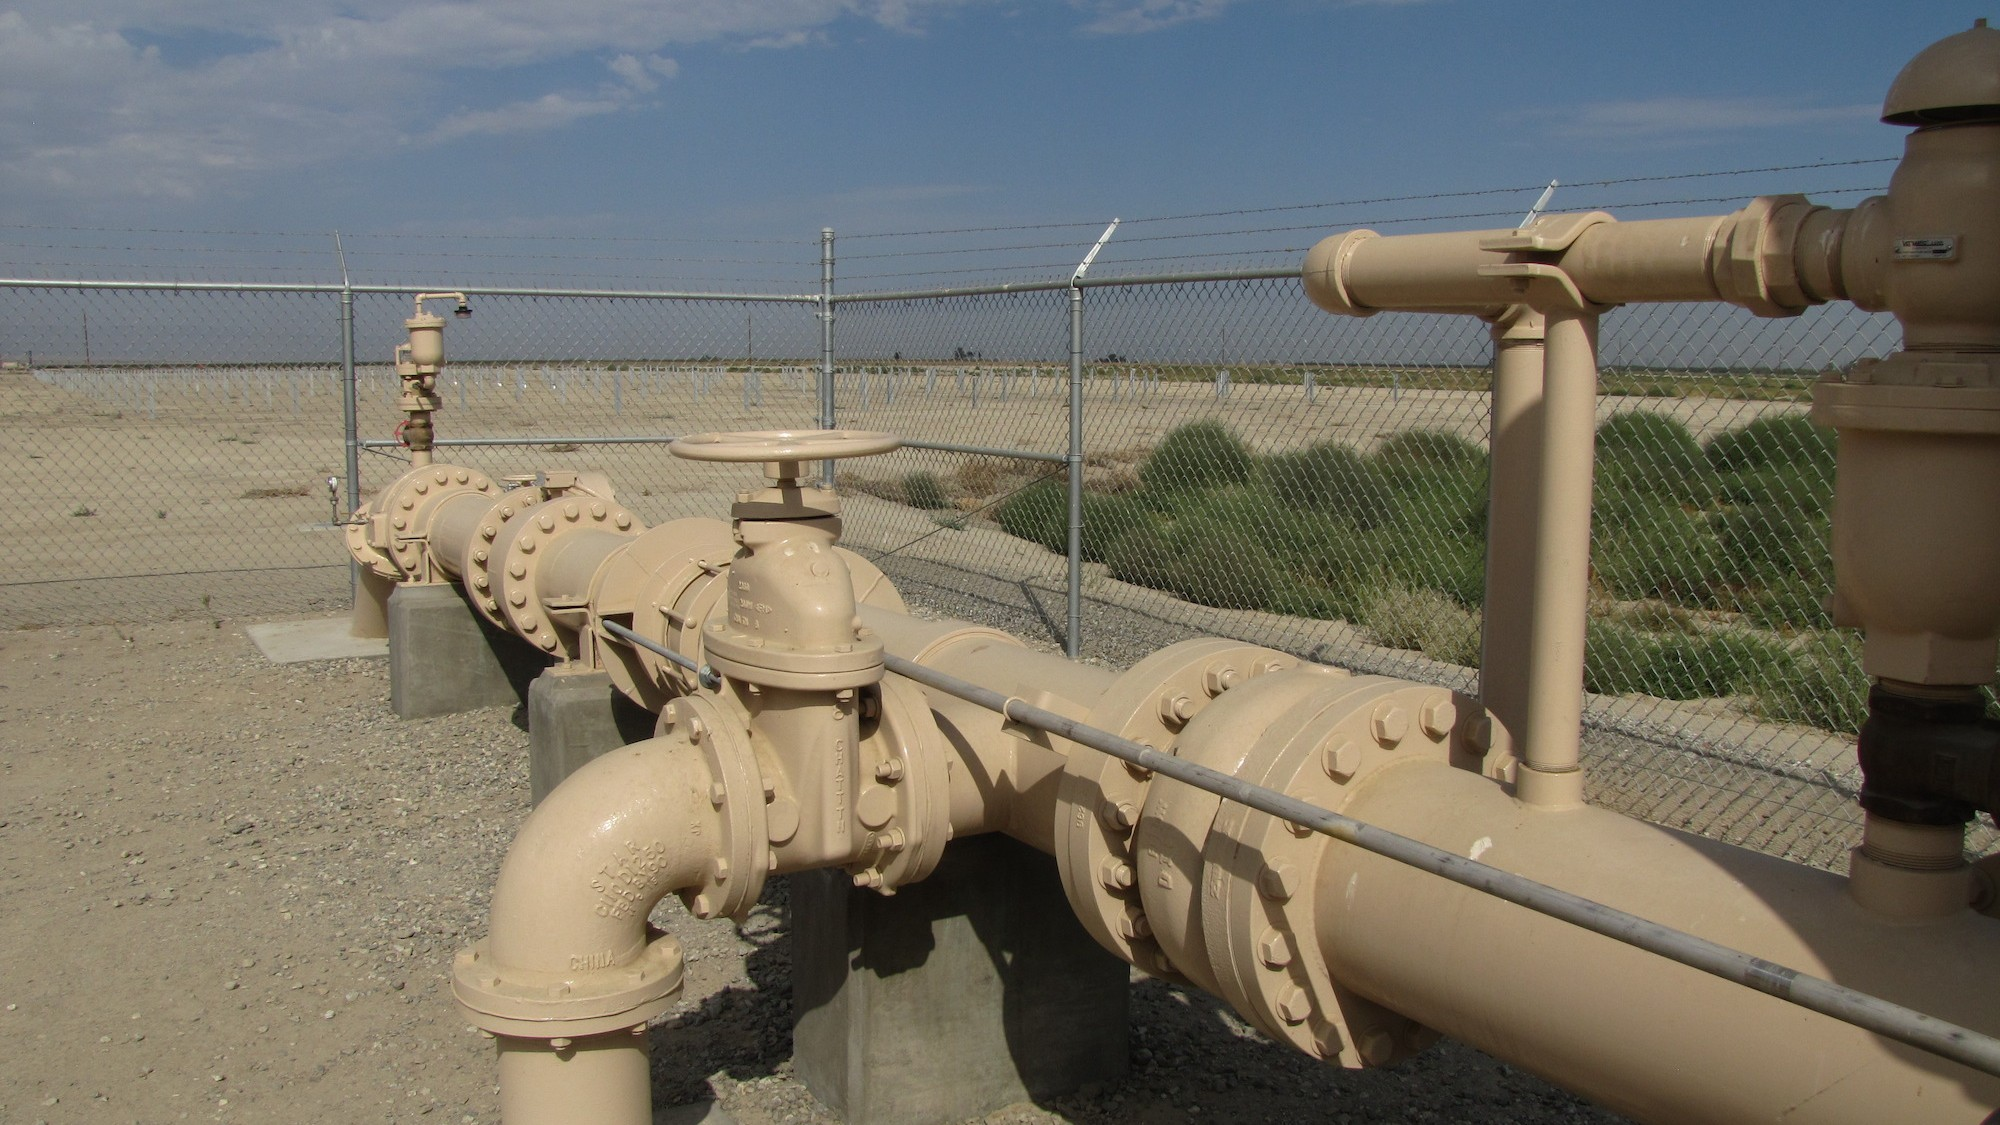 A security fence guards groundwater pumps in the San Joaquin Valley. (Craig Miller/KQED)